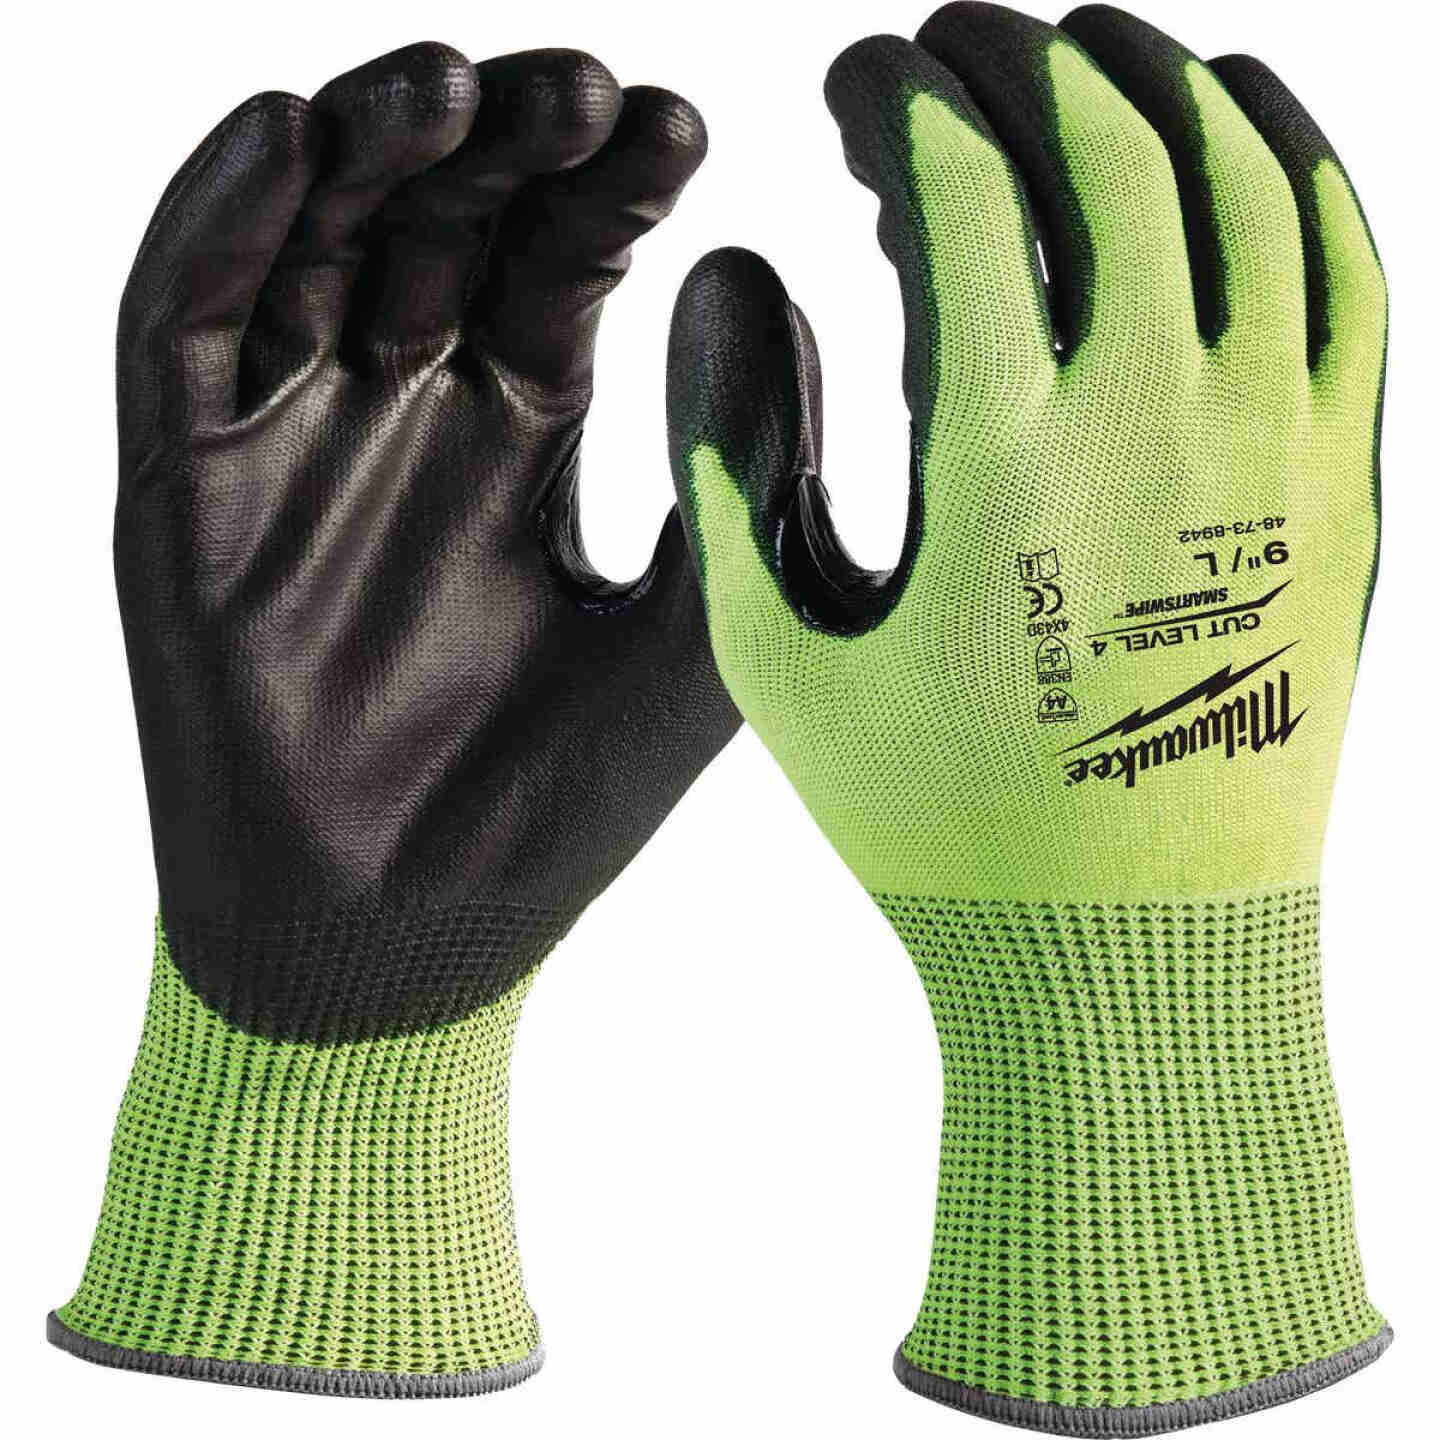 Milwaukee Men's Large Cut Level 4 High Vis Nitrile Dipped Glove Image 1